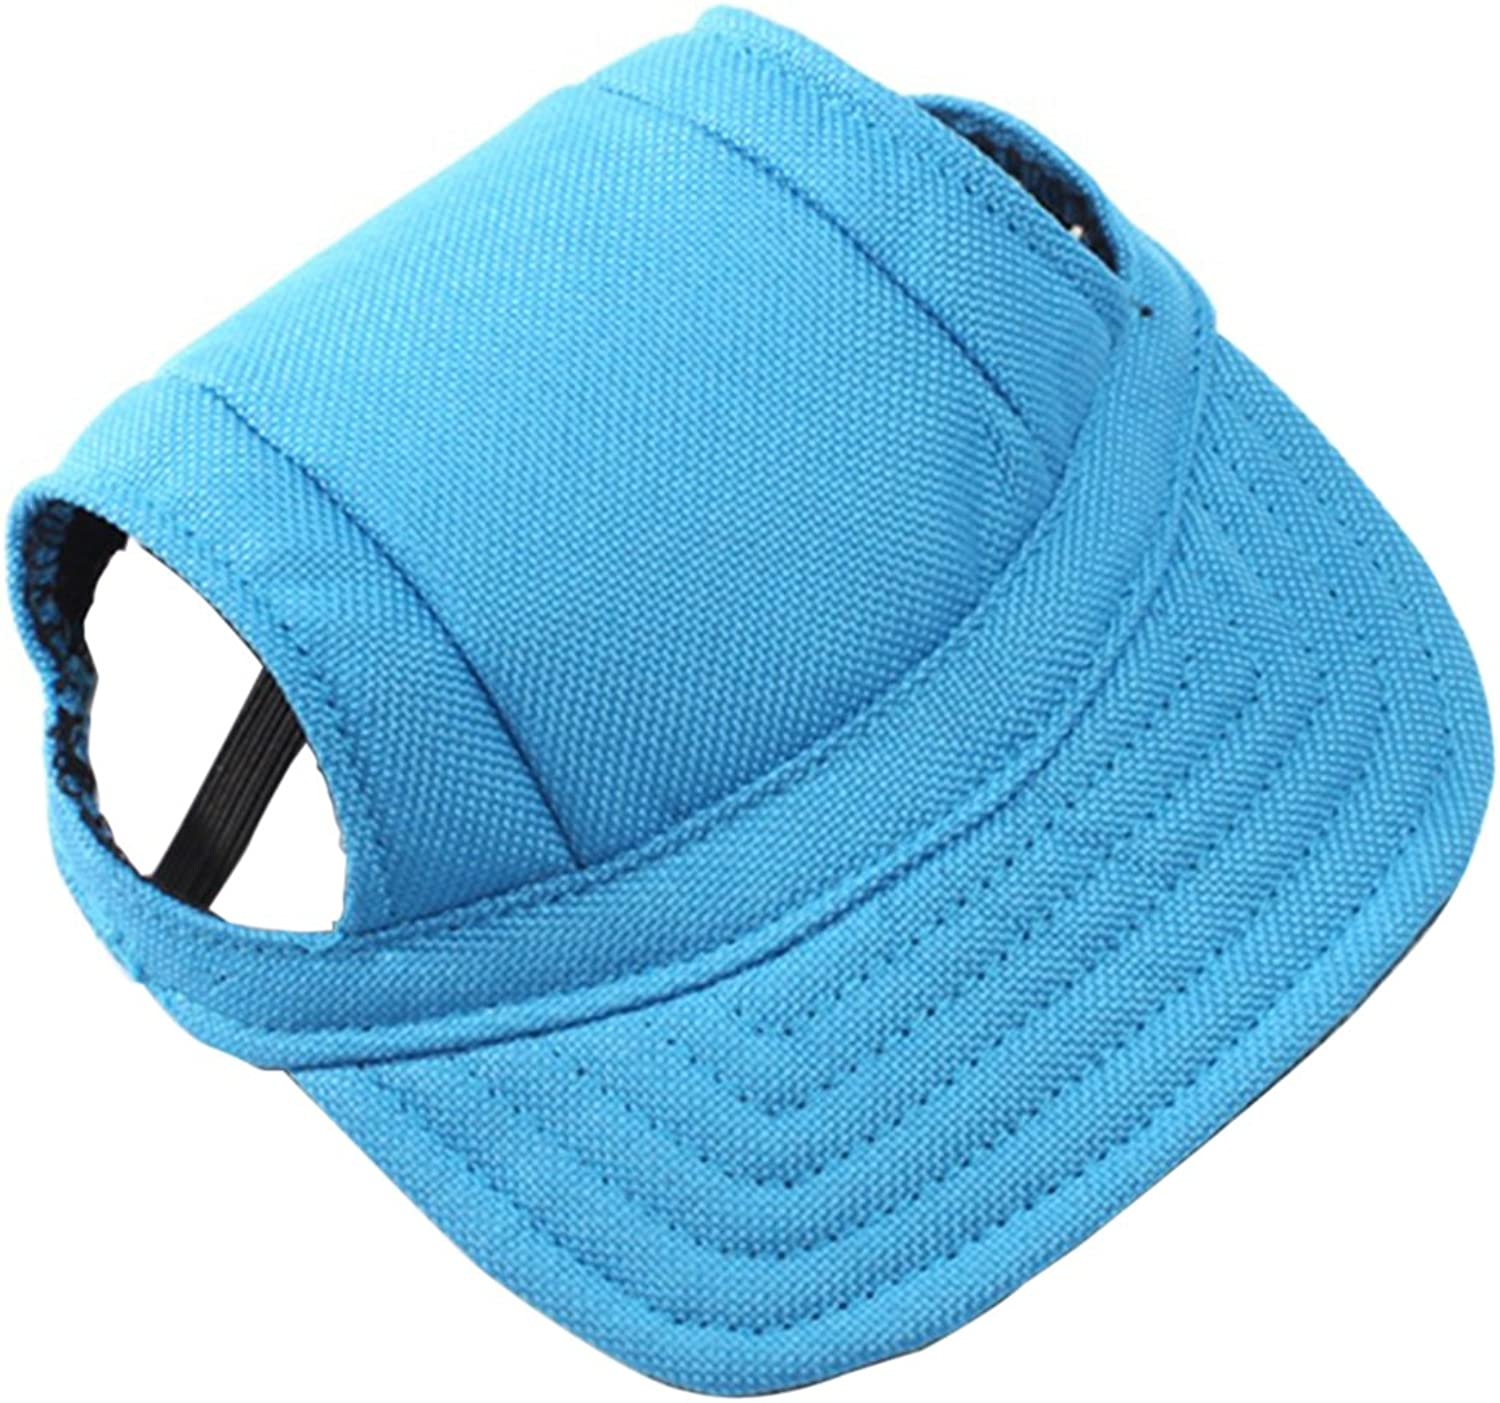 BUYITNOW Pet Sun Hat with Ear Holes Adjustable Baseball Cap for Small Dogs